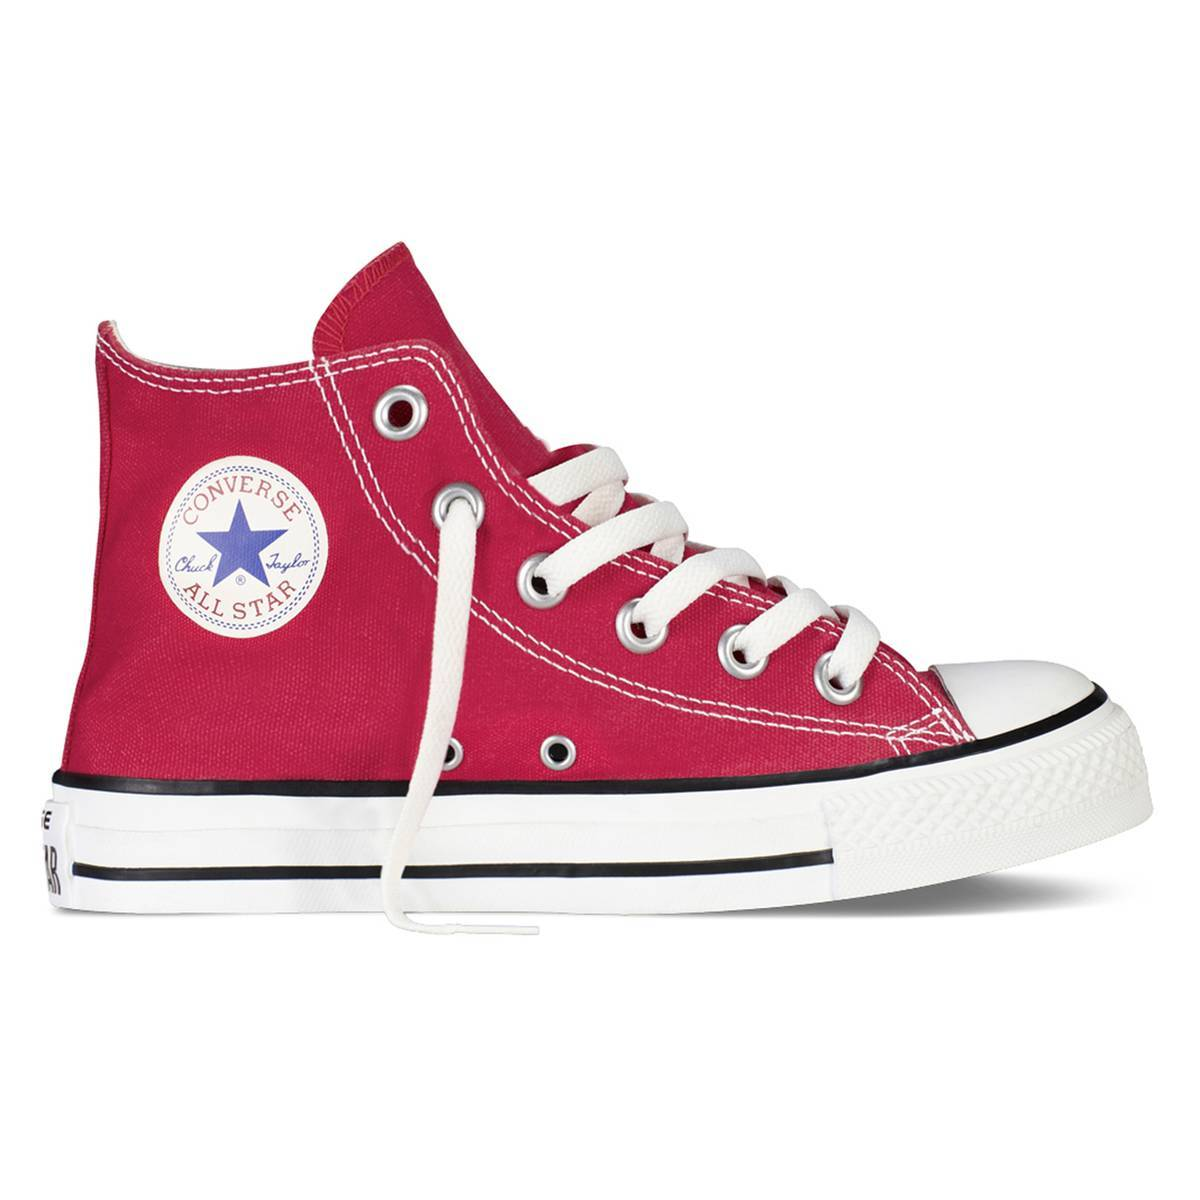 Converse Zapatillas de caña alta Chuck Taylor All Star Hi Canvas rojo